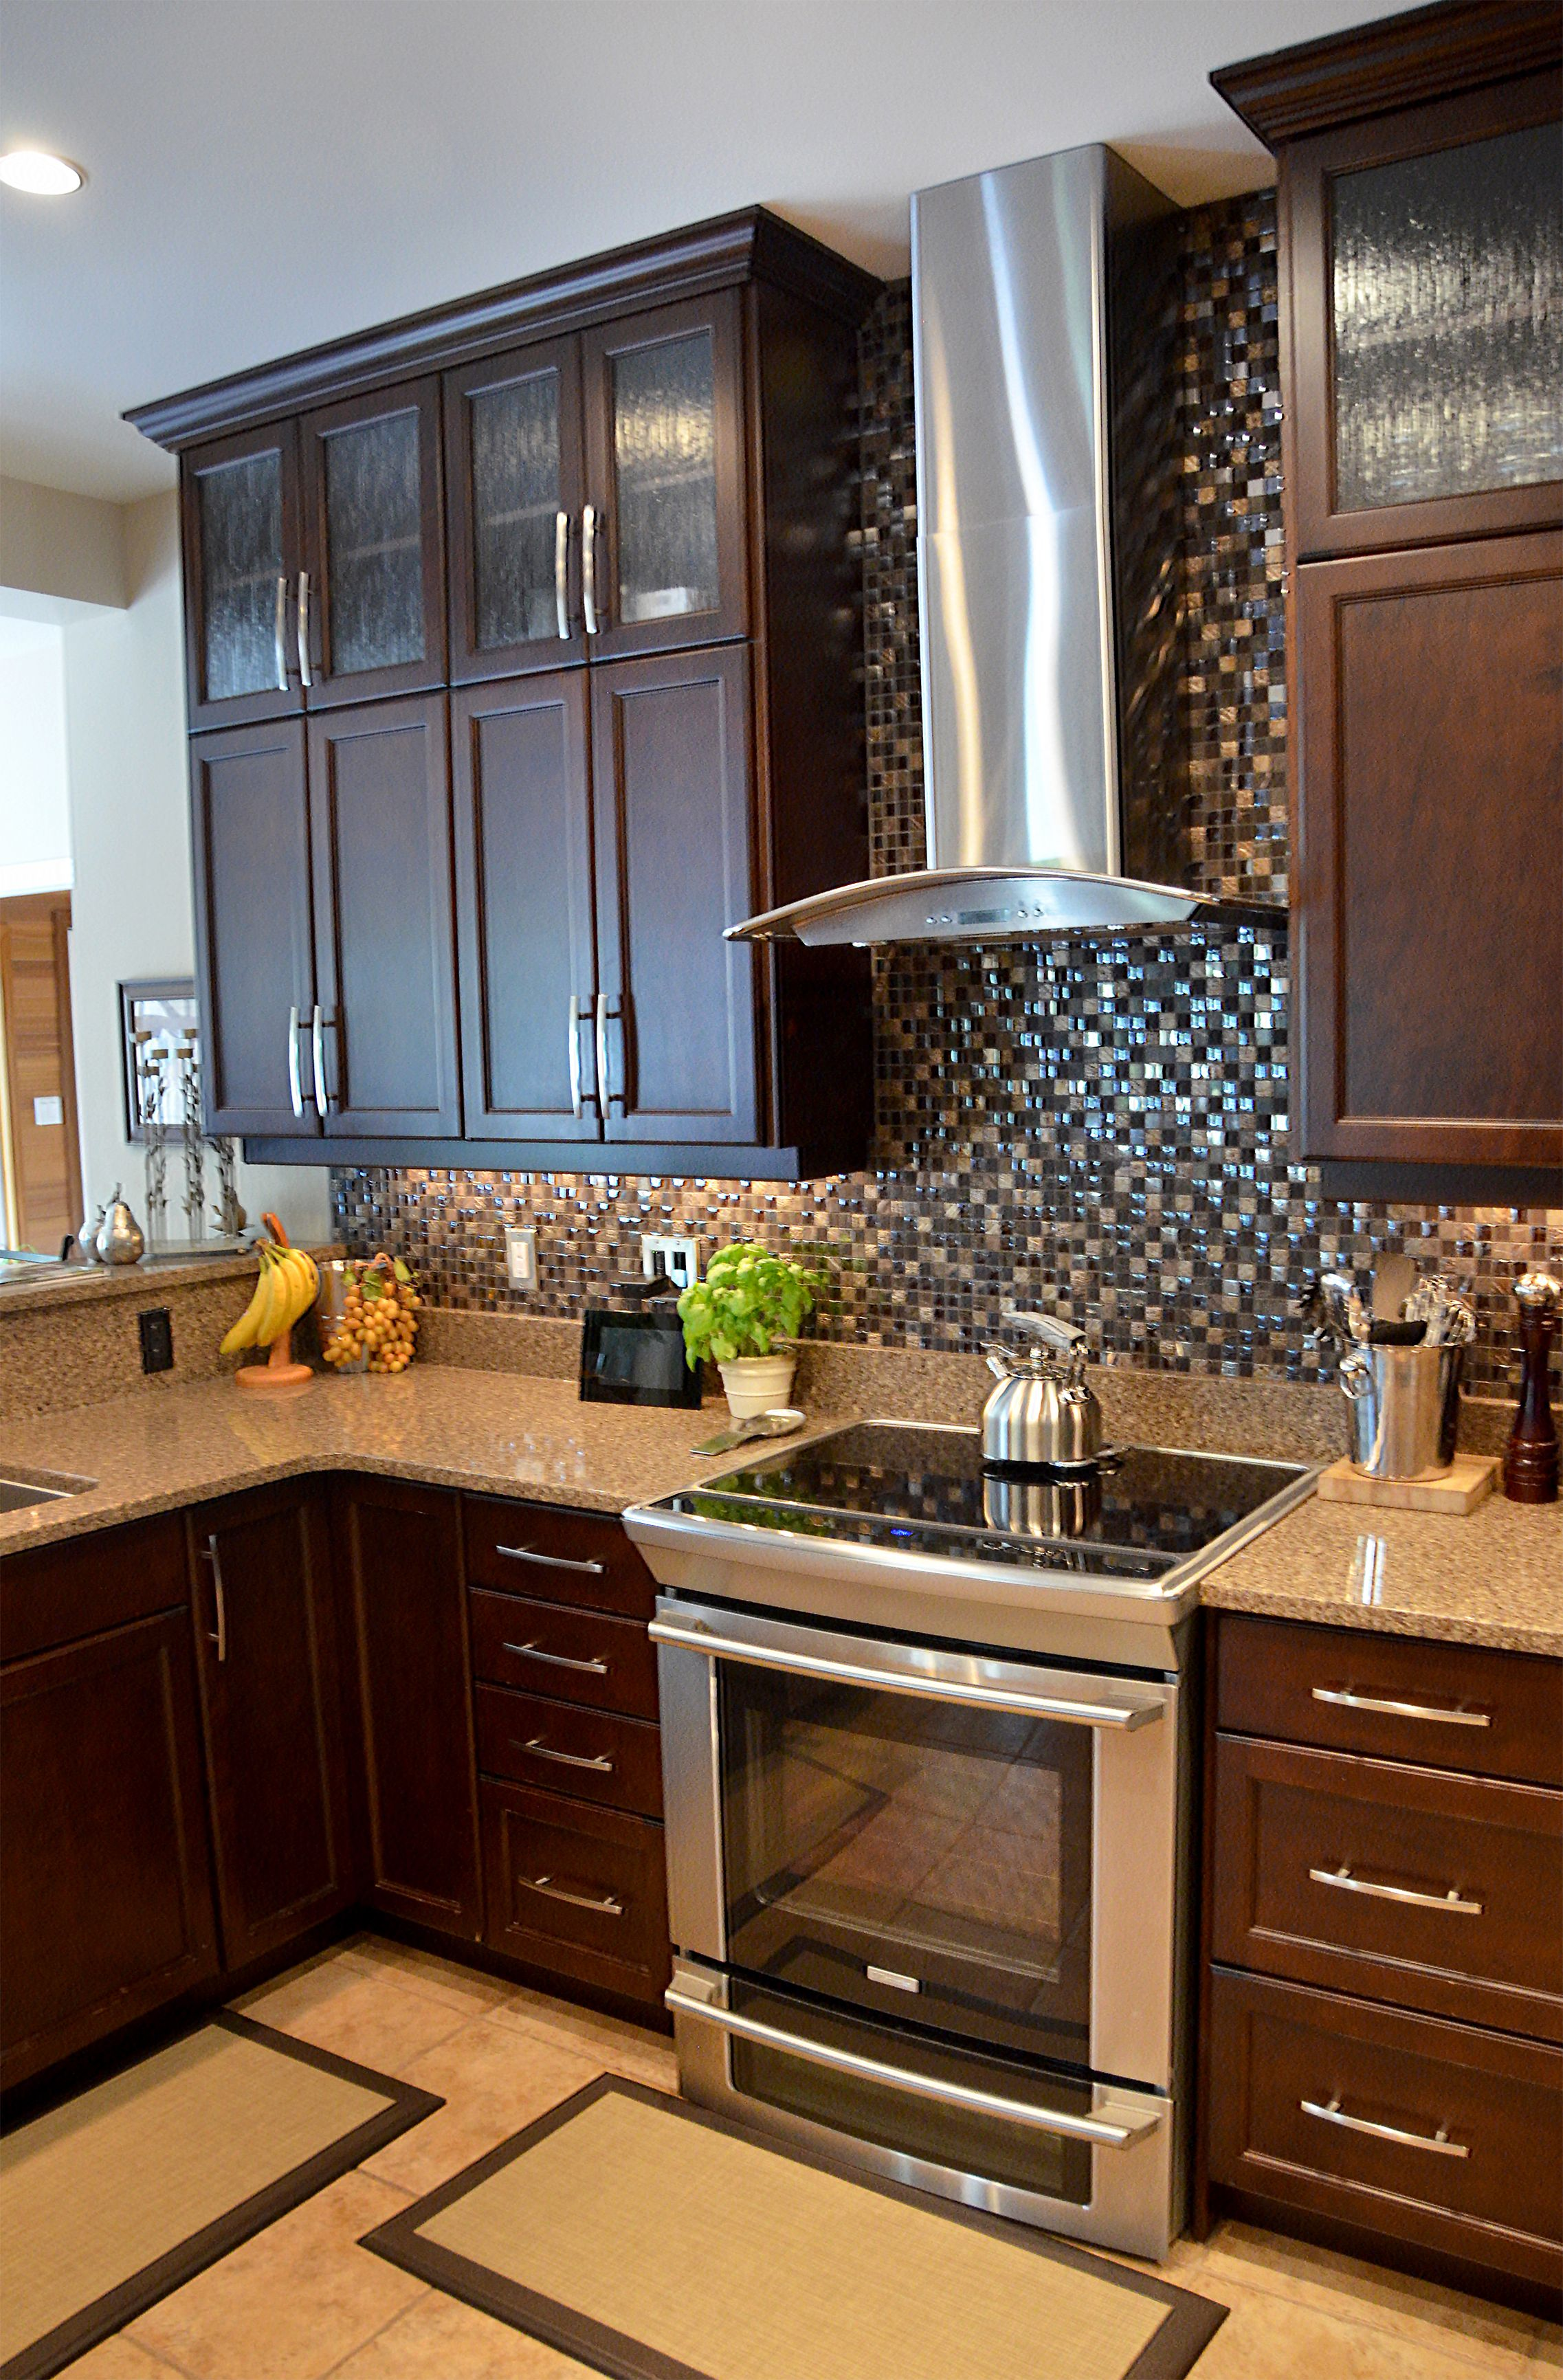 catalina kitchen with extended height cabinets featuring glass inserts royalhomes com cocinas on kitchen cabinets glass inserts id=64341